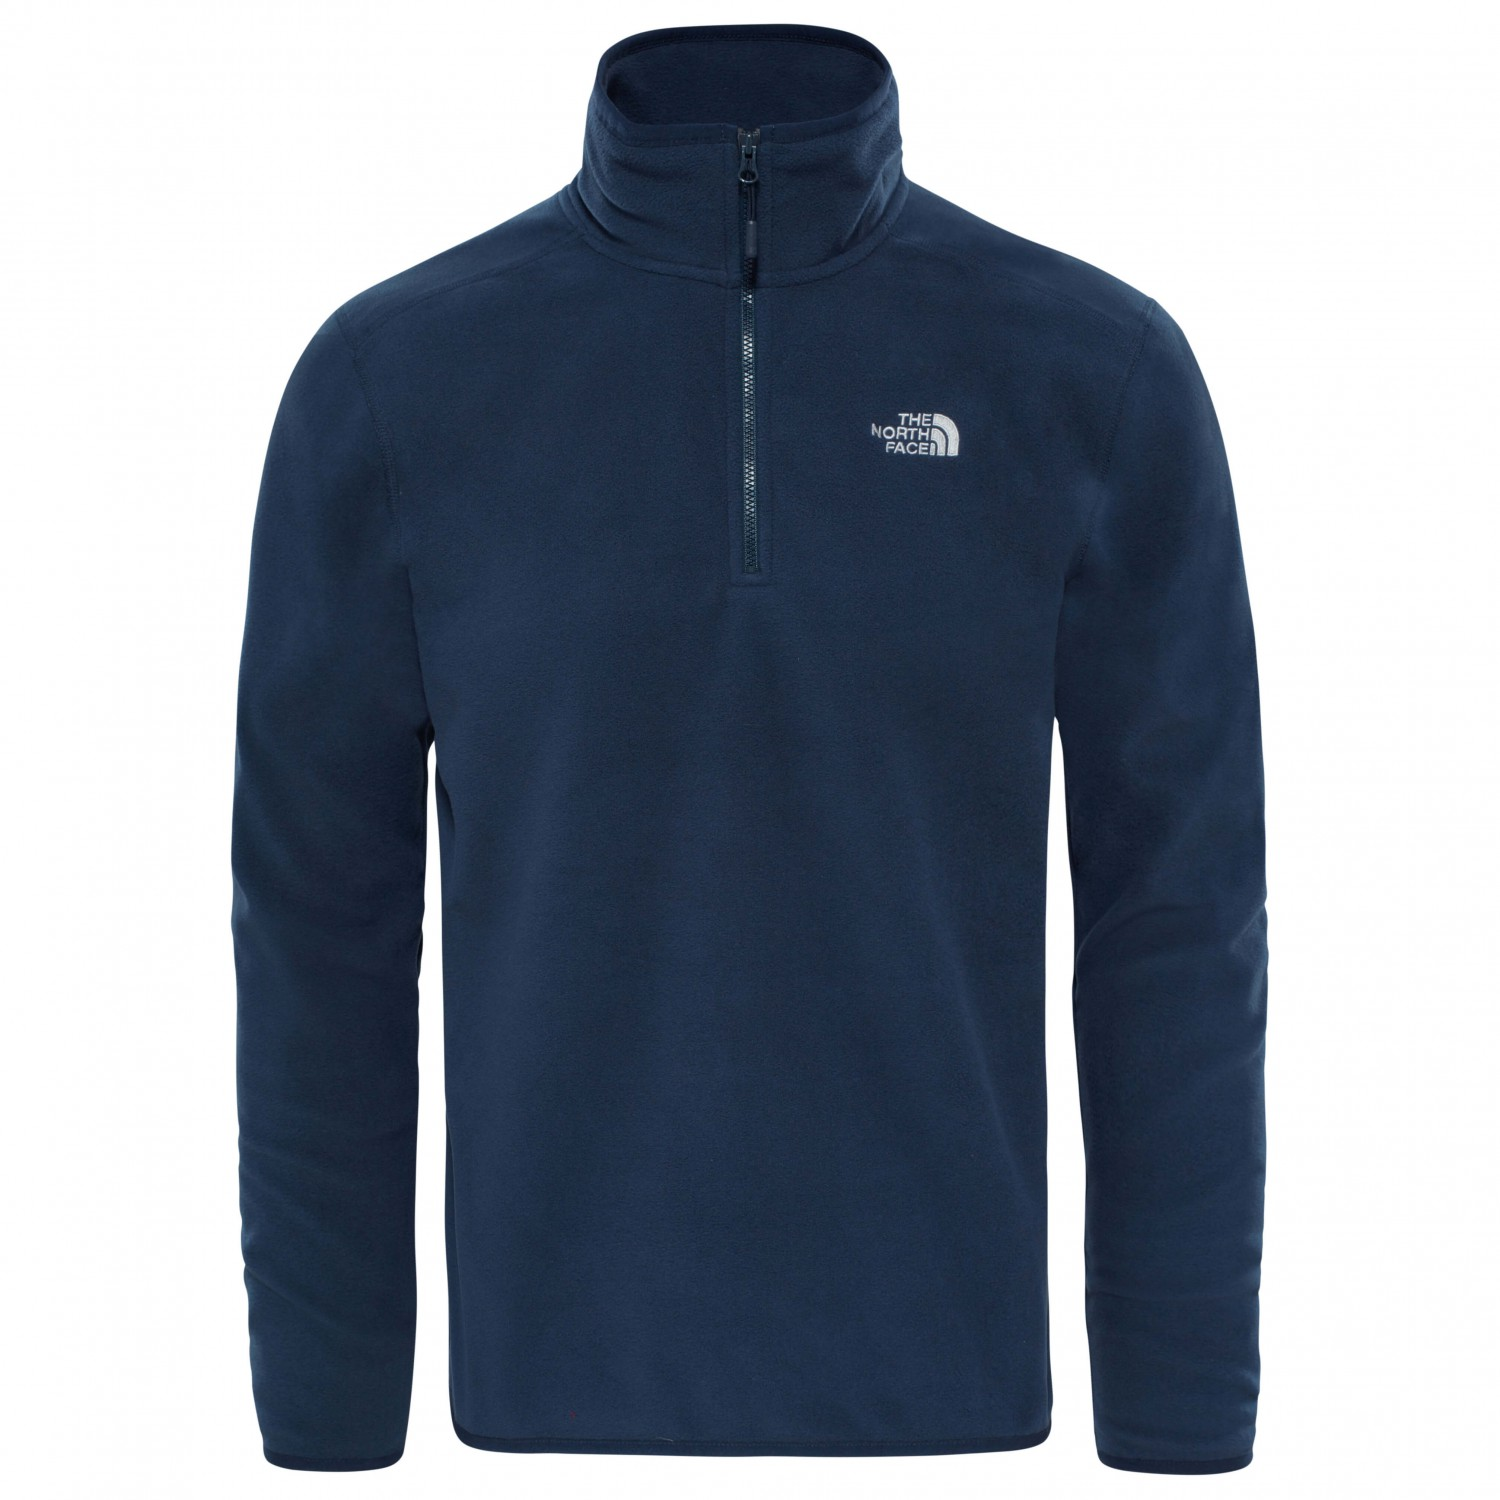 The North Face 100 Glacier 1/4 Zip